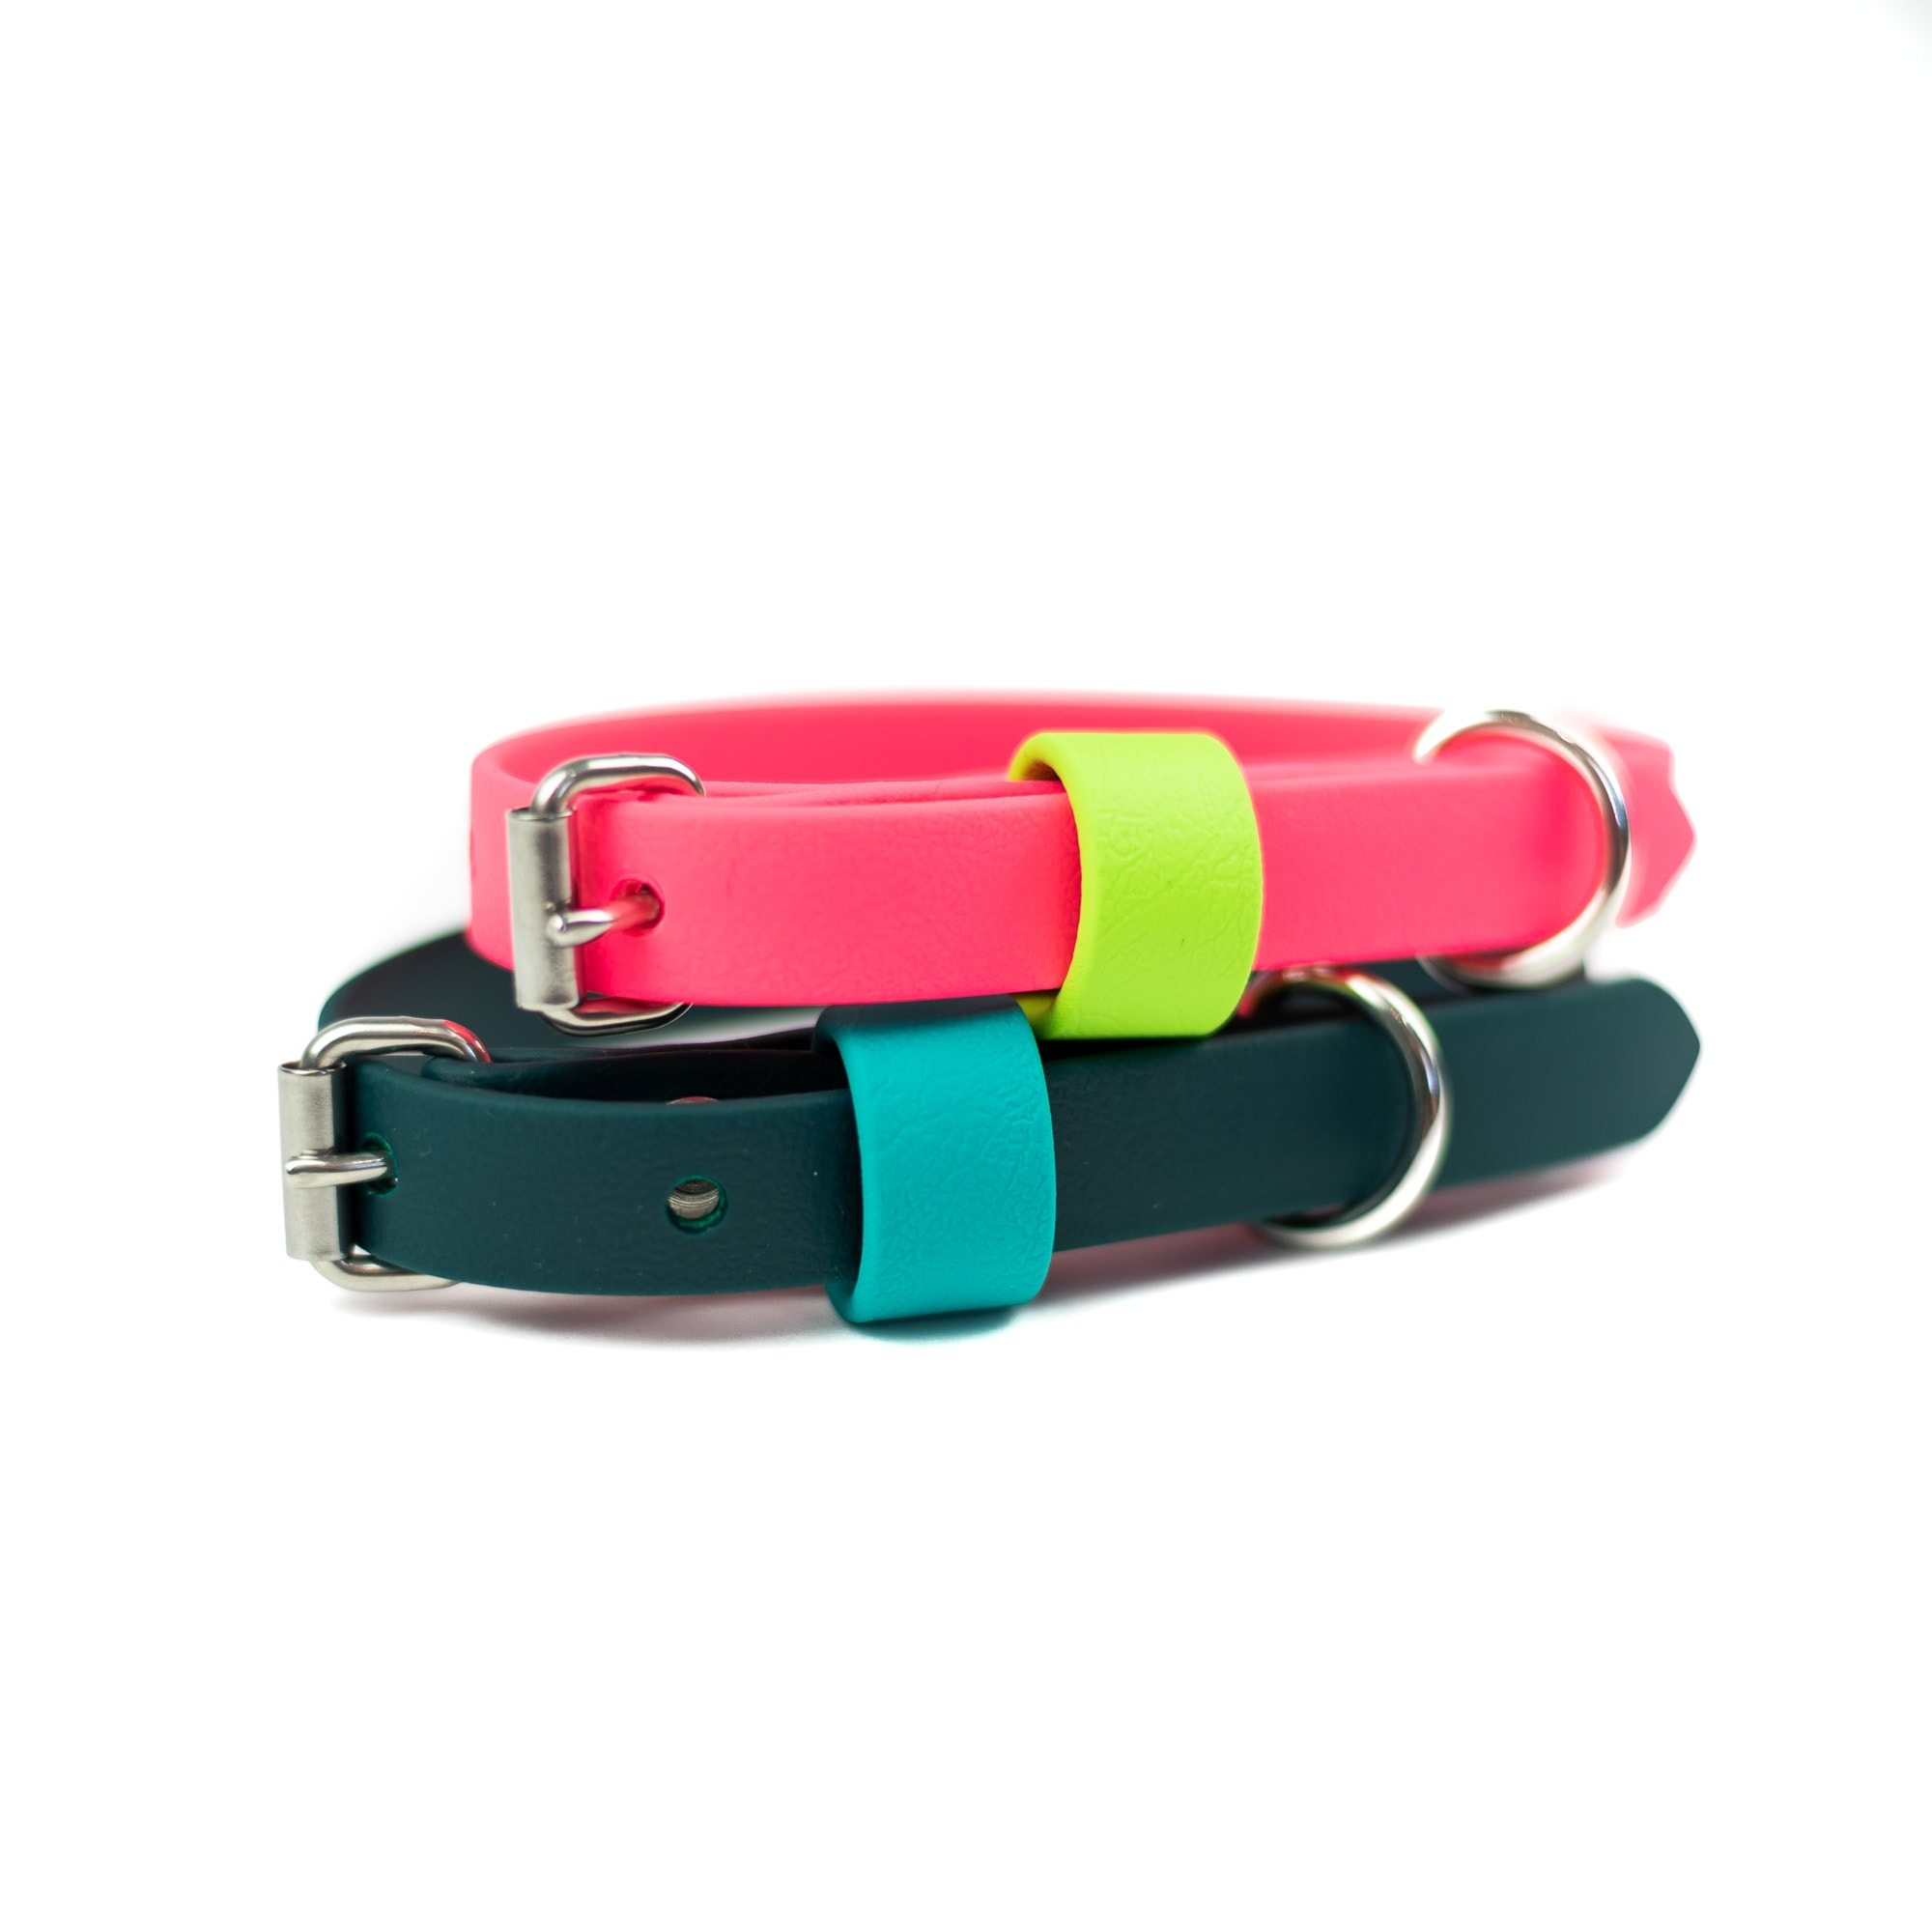 "5/8"" small adventure dog collar in pink and green"